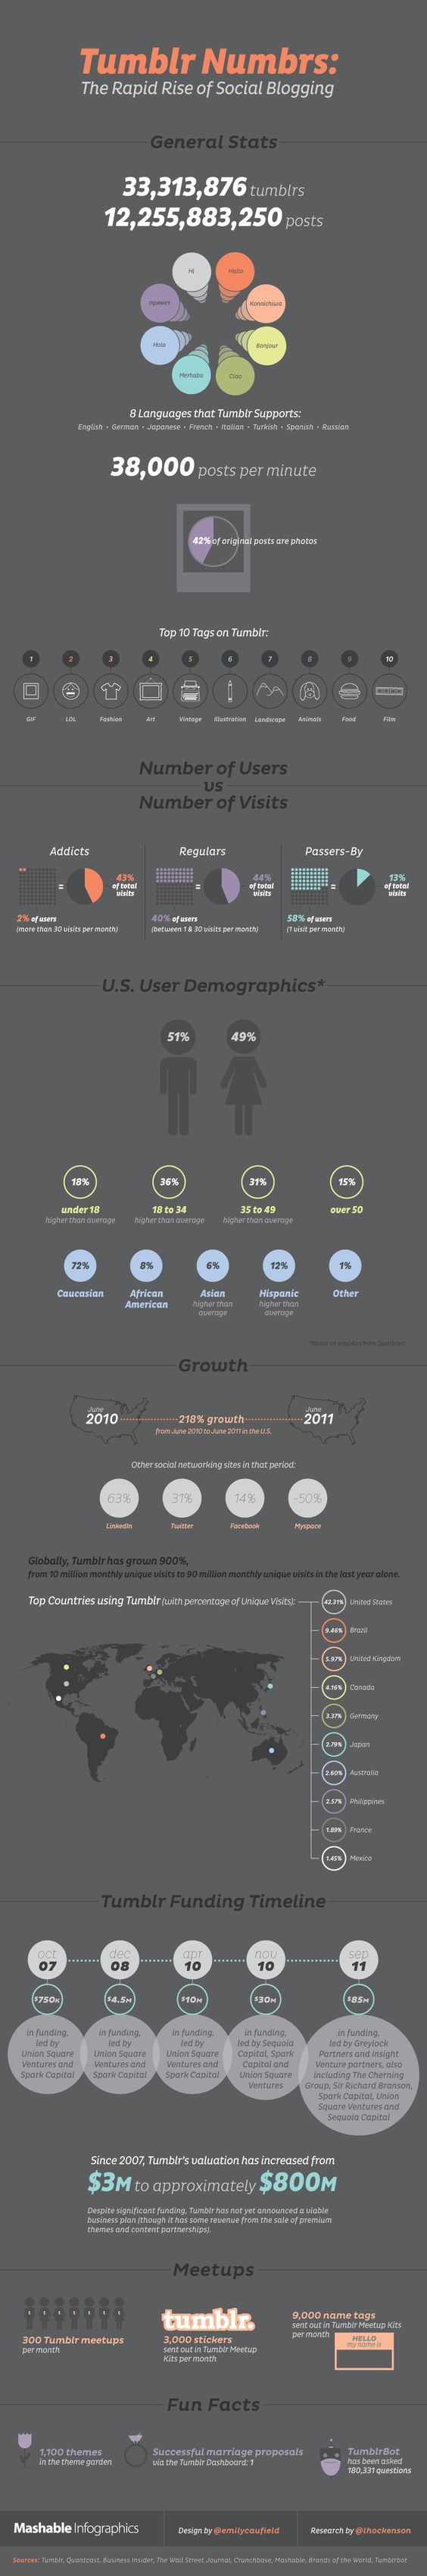 Tumblr by the Numbers